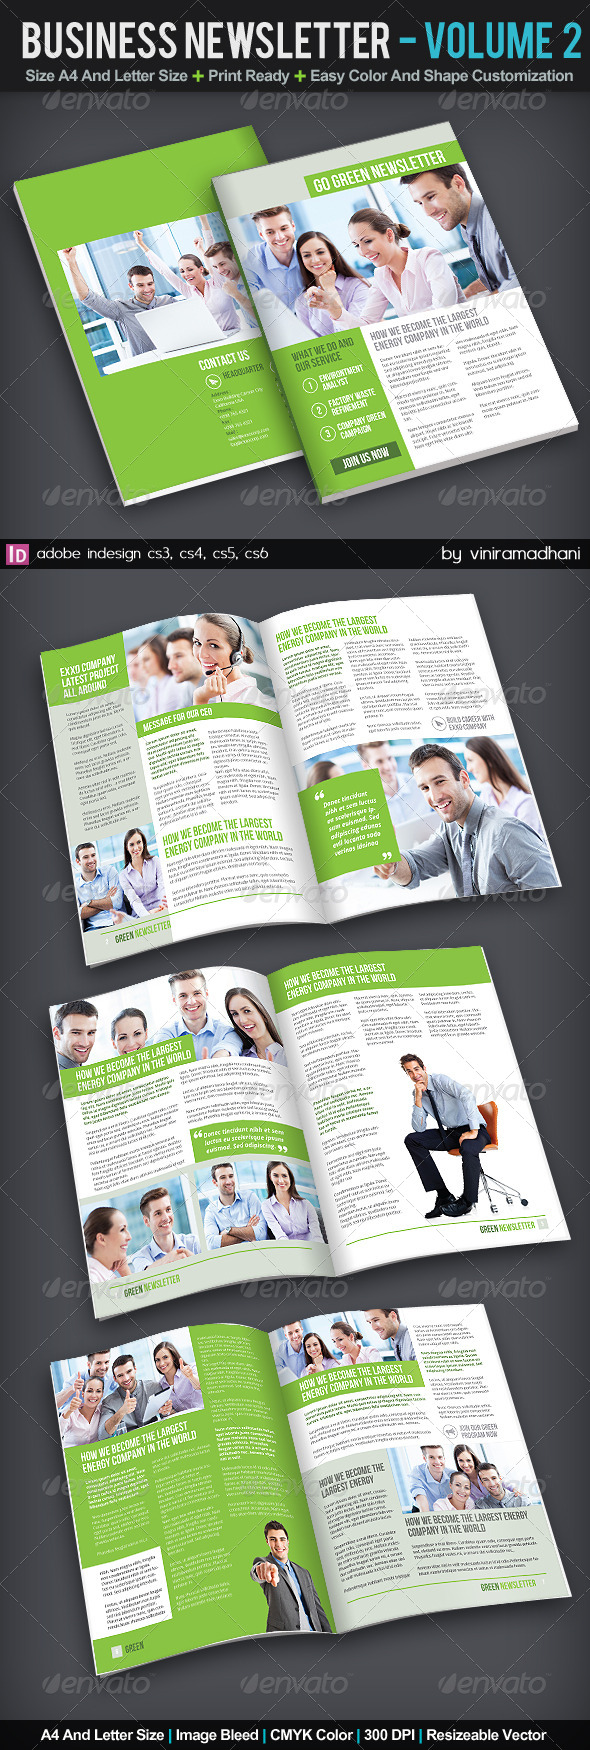 Business Newsletter | Volume 2 - Newsletters Print Templates